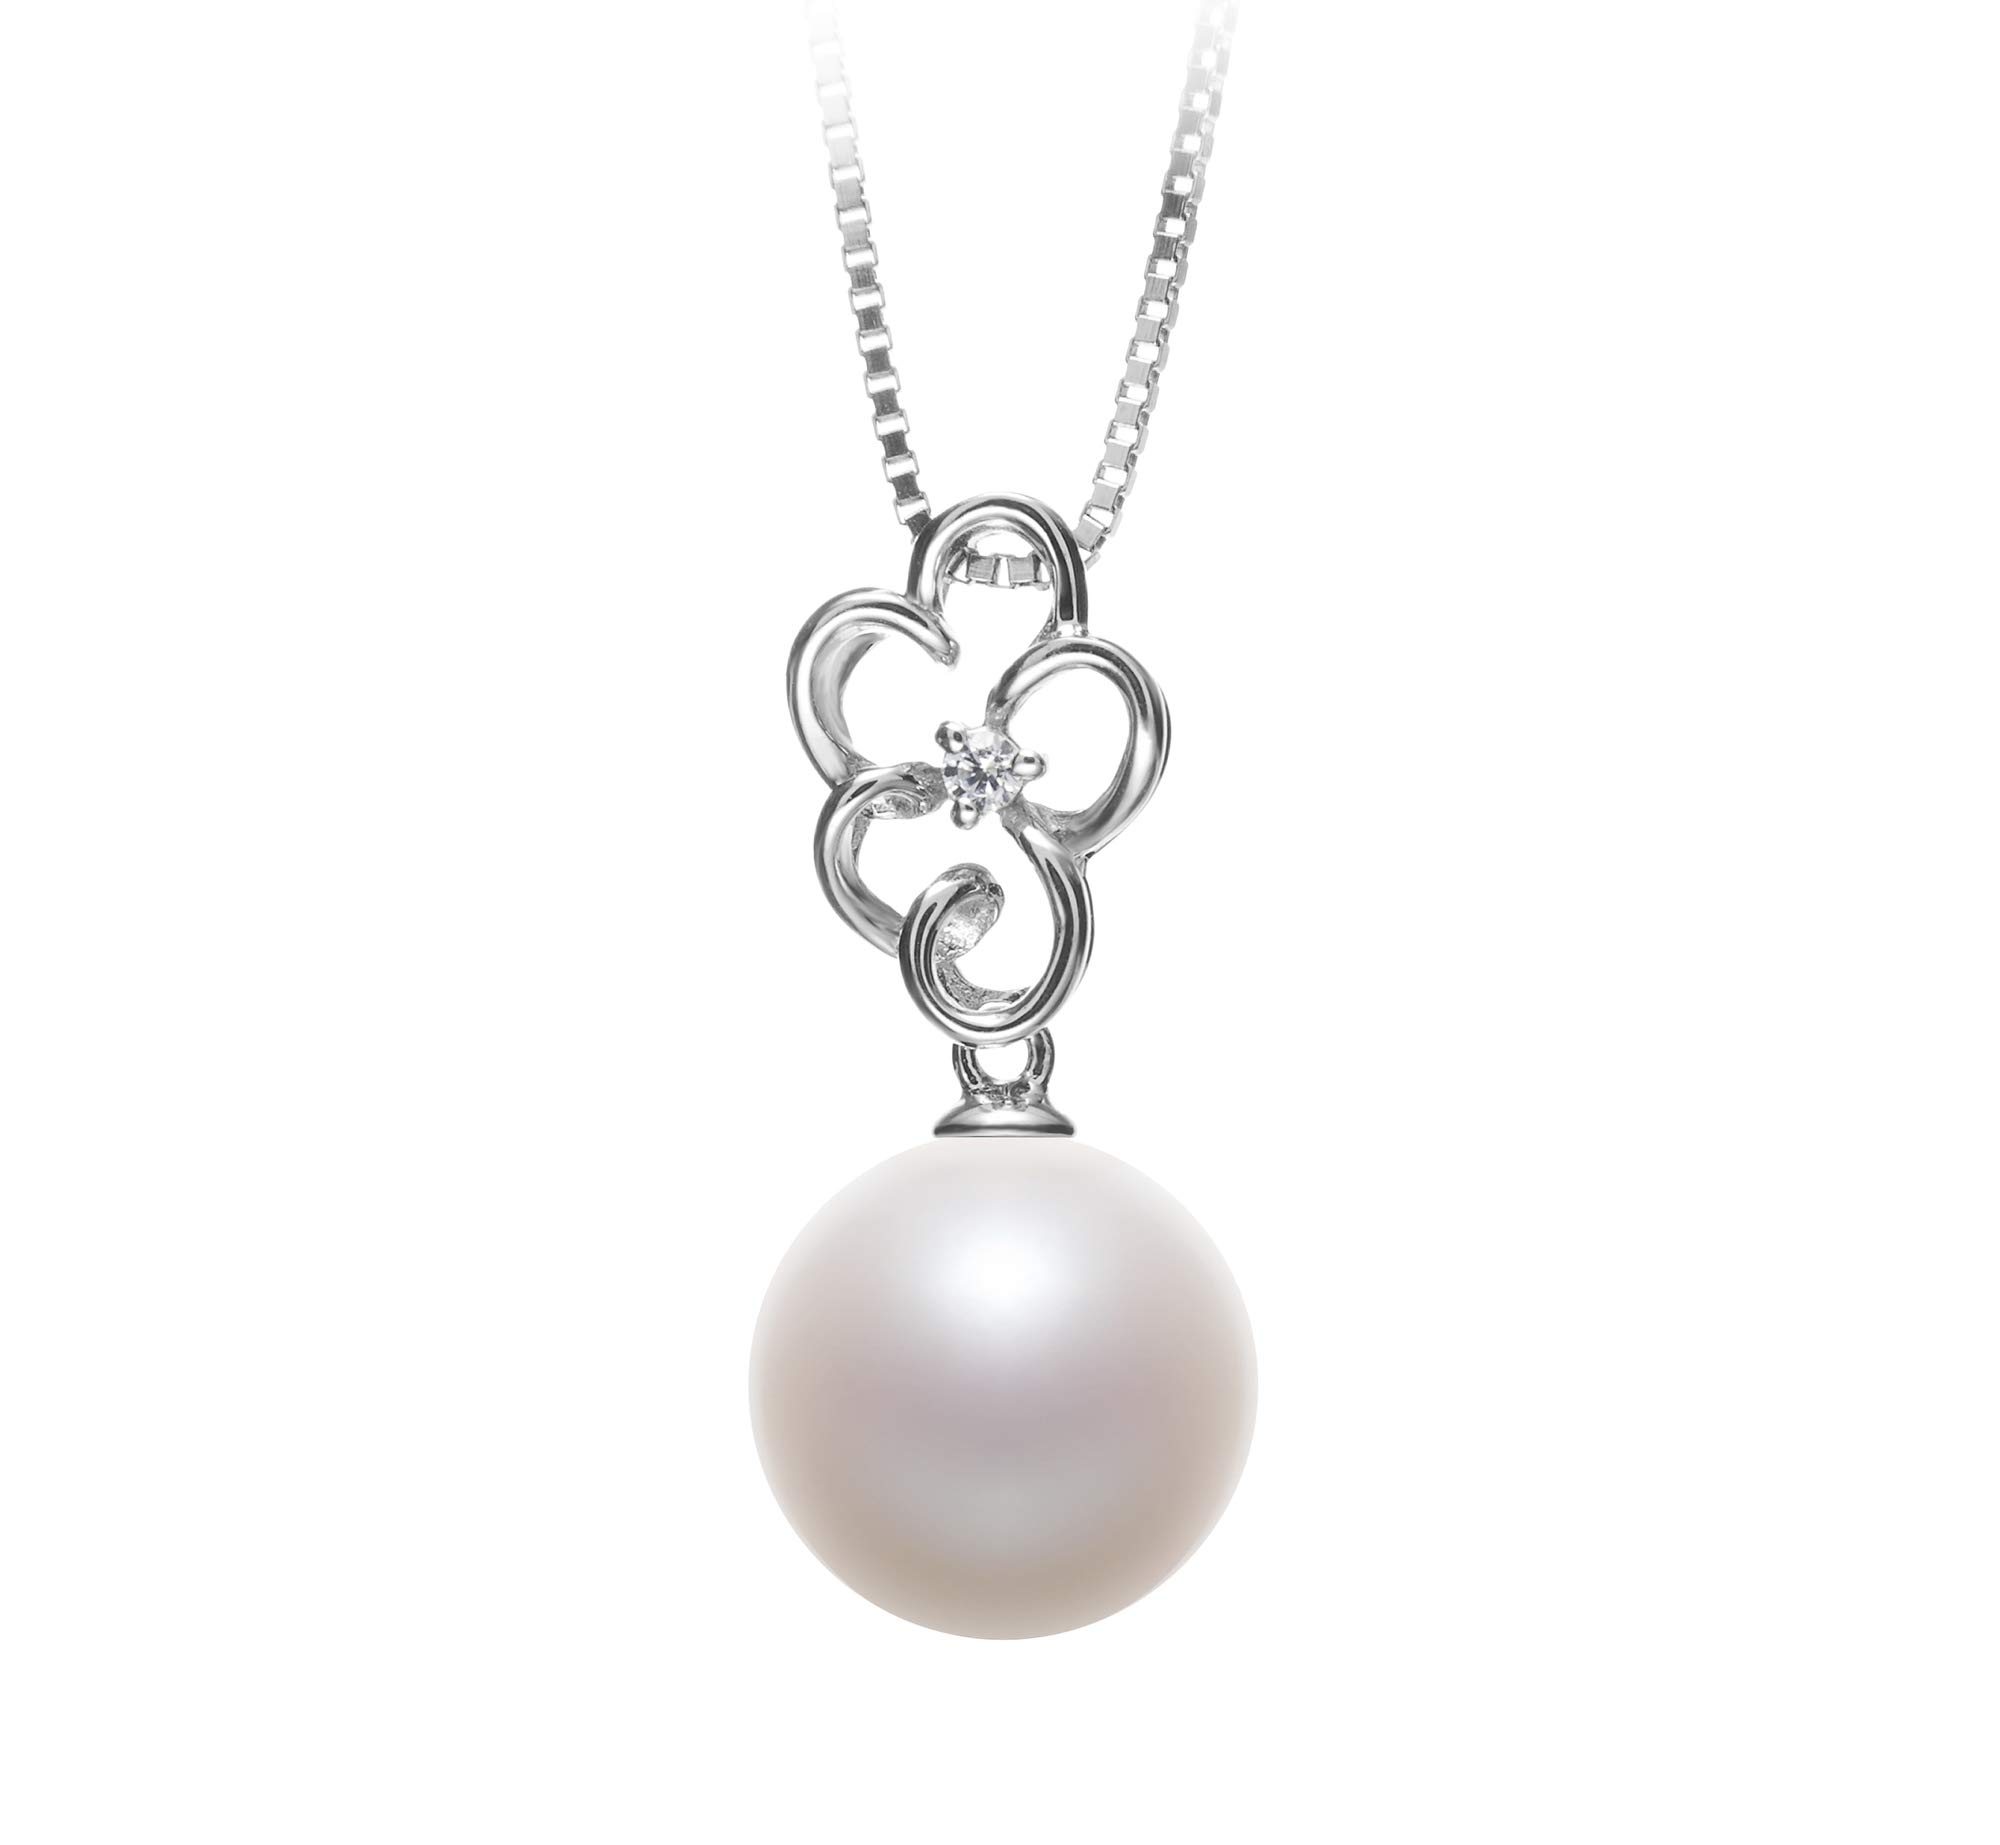 Hilary White 10-11mm AAAA Quality Freshwater 925 Sterling Silver Cultured Pearl Pendant For Women